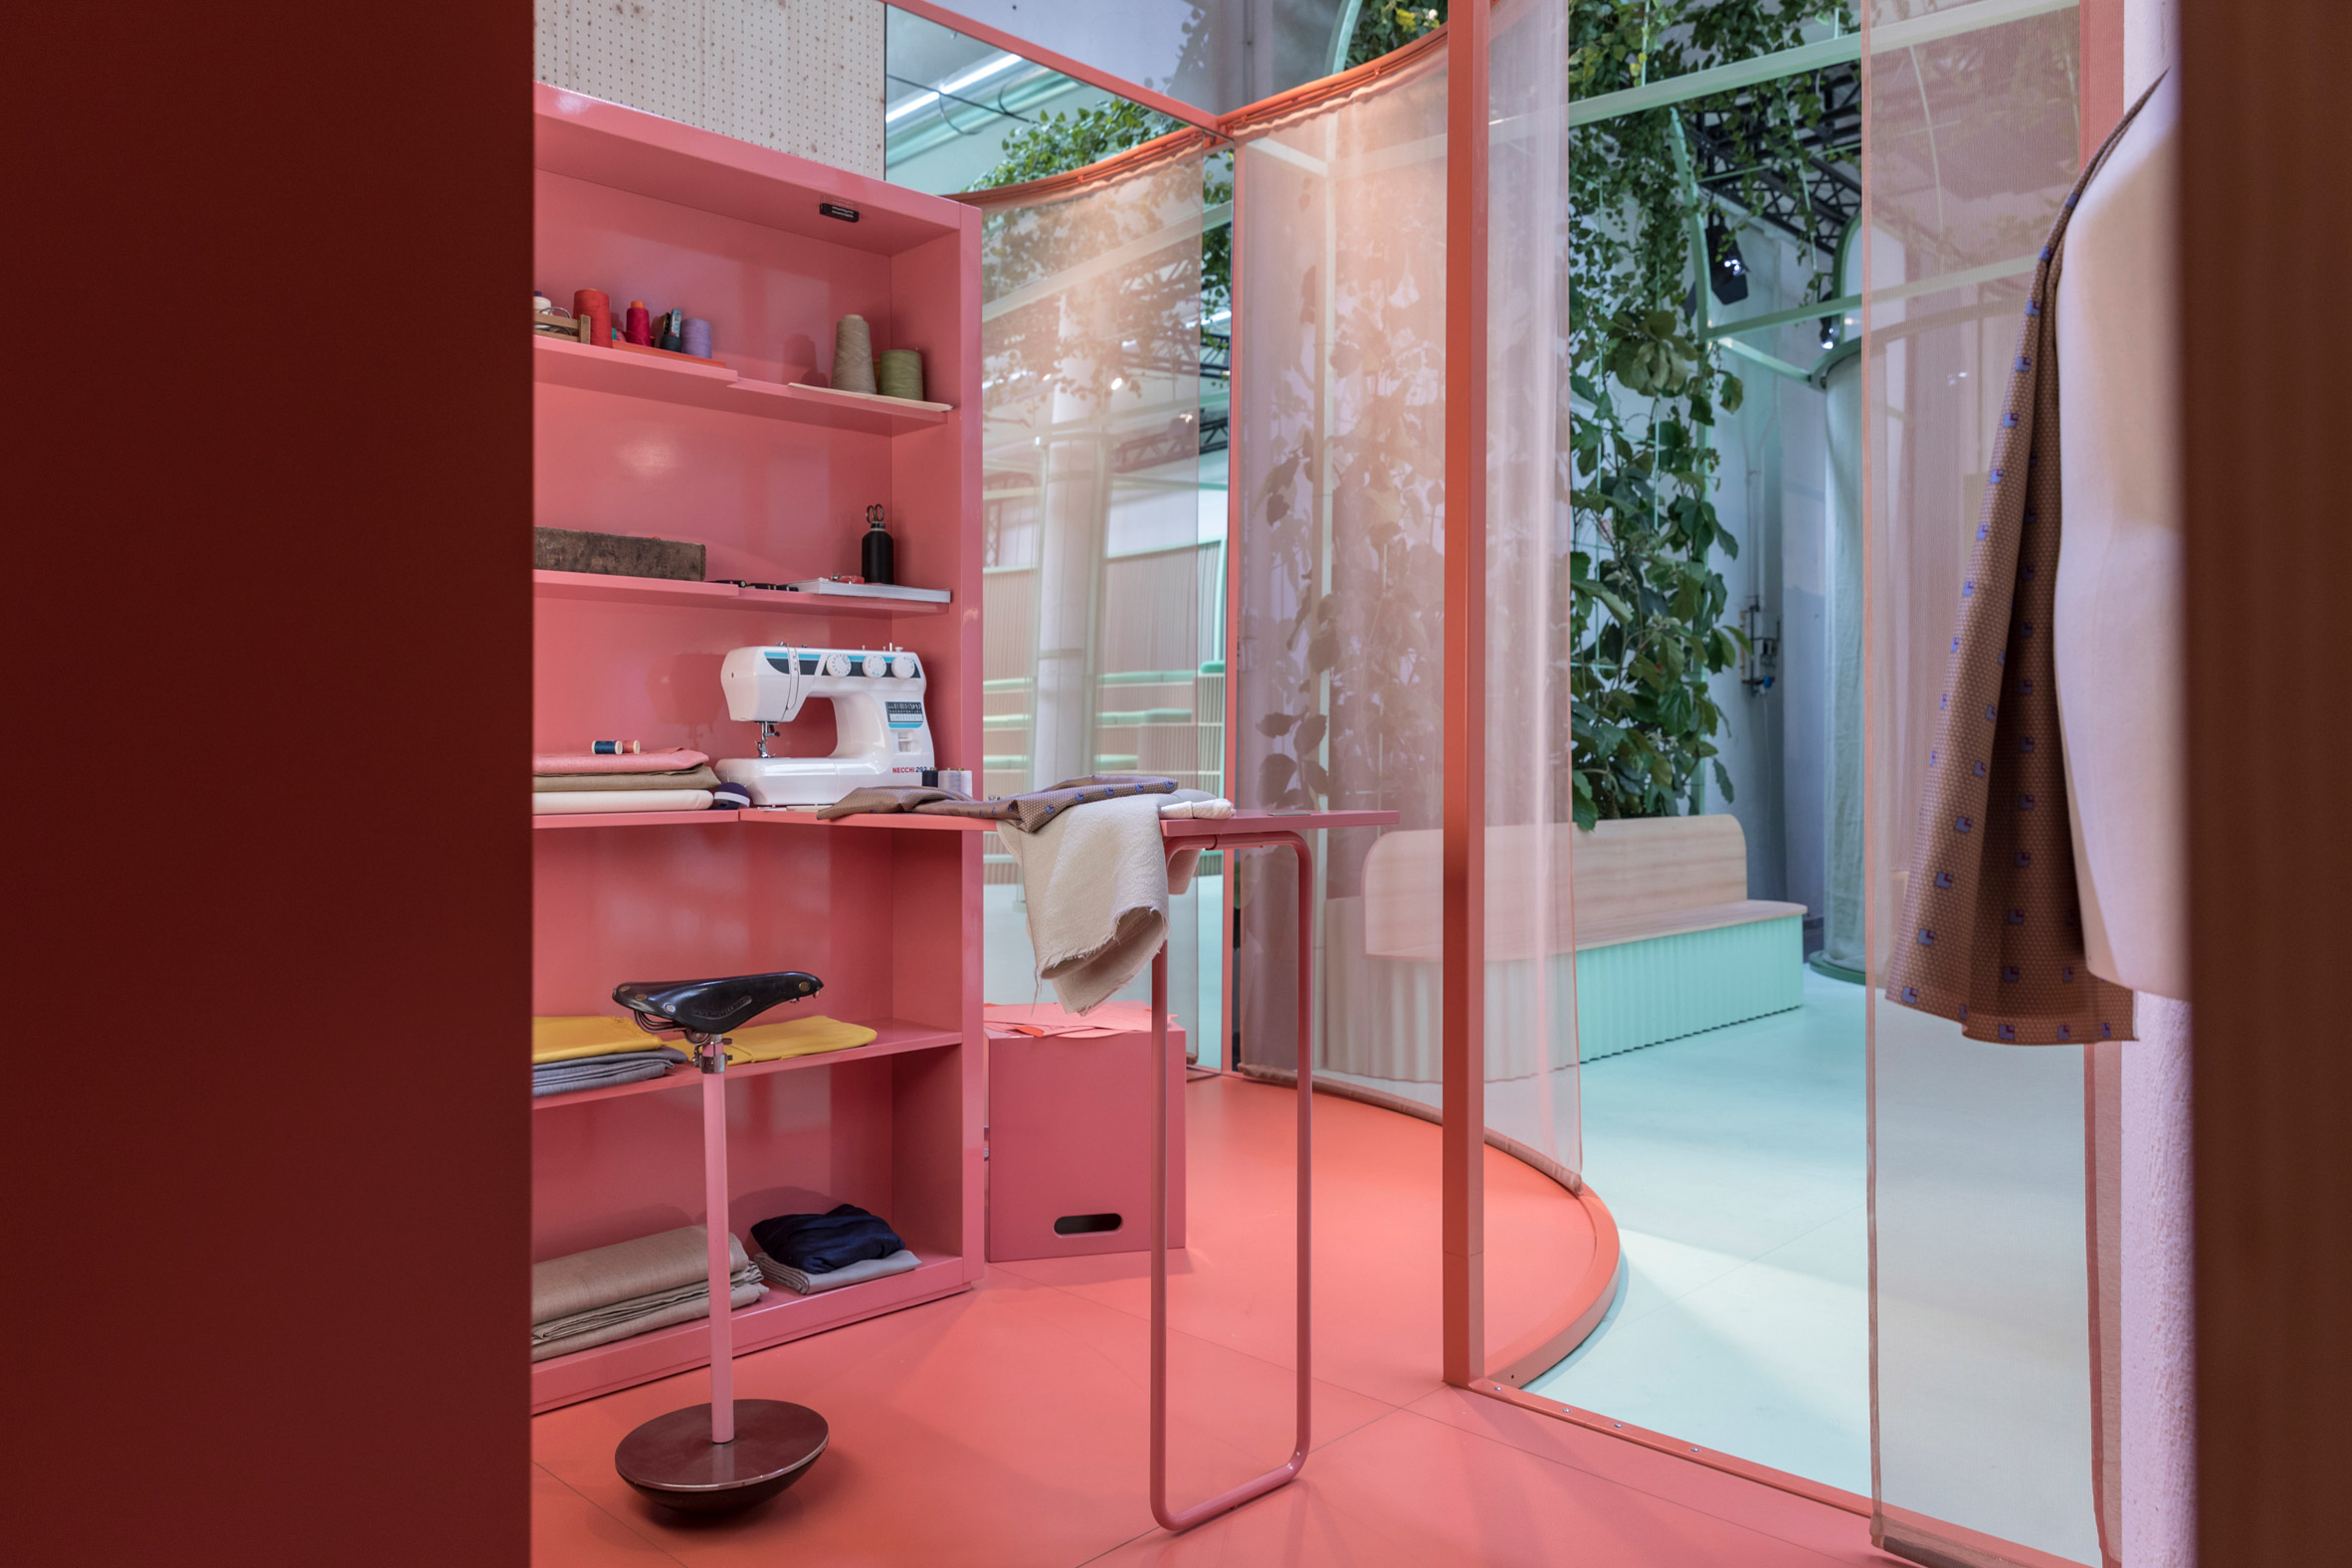 MINI Living and Studiomama create colourful capsule homes for Milan installation